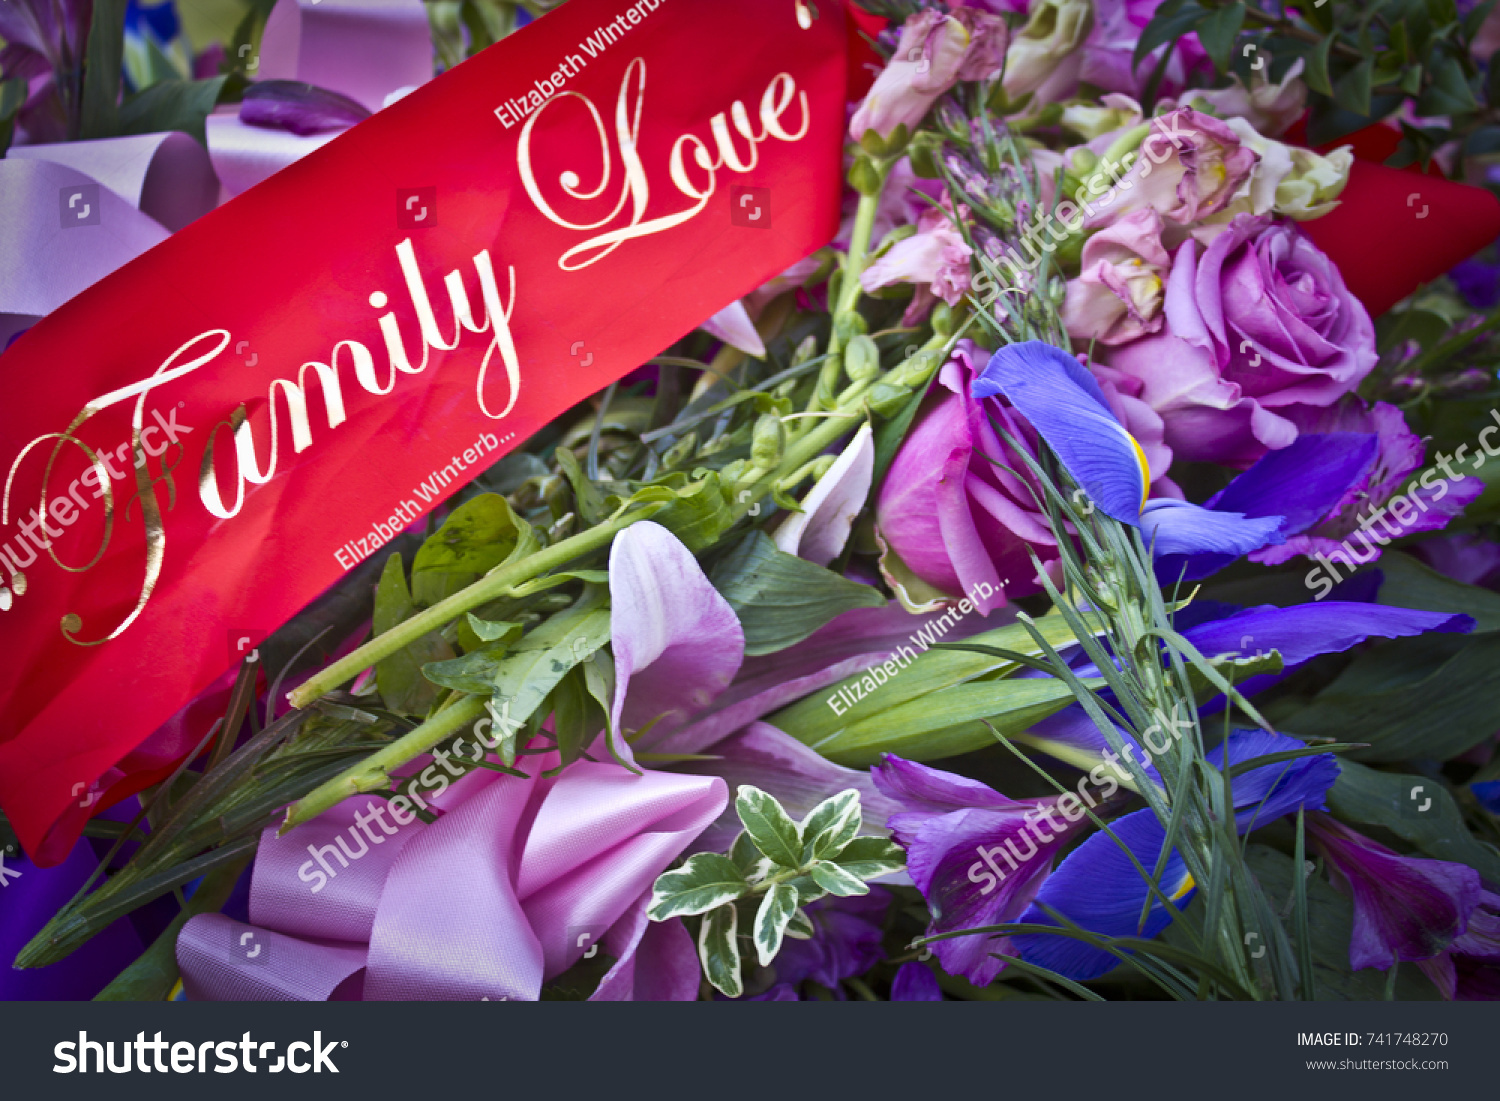 Funeral flowers red family love banner stock photo edit now funeral flowers with red family love banner izmirmasajfo